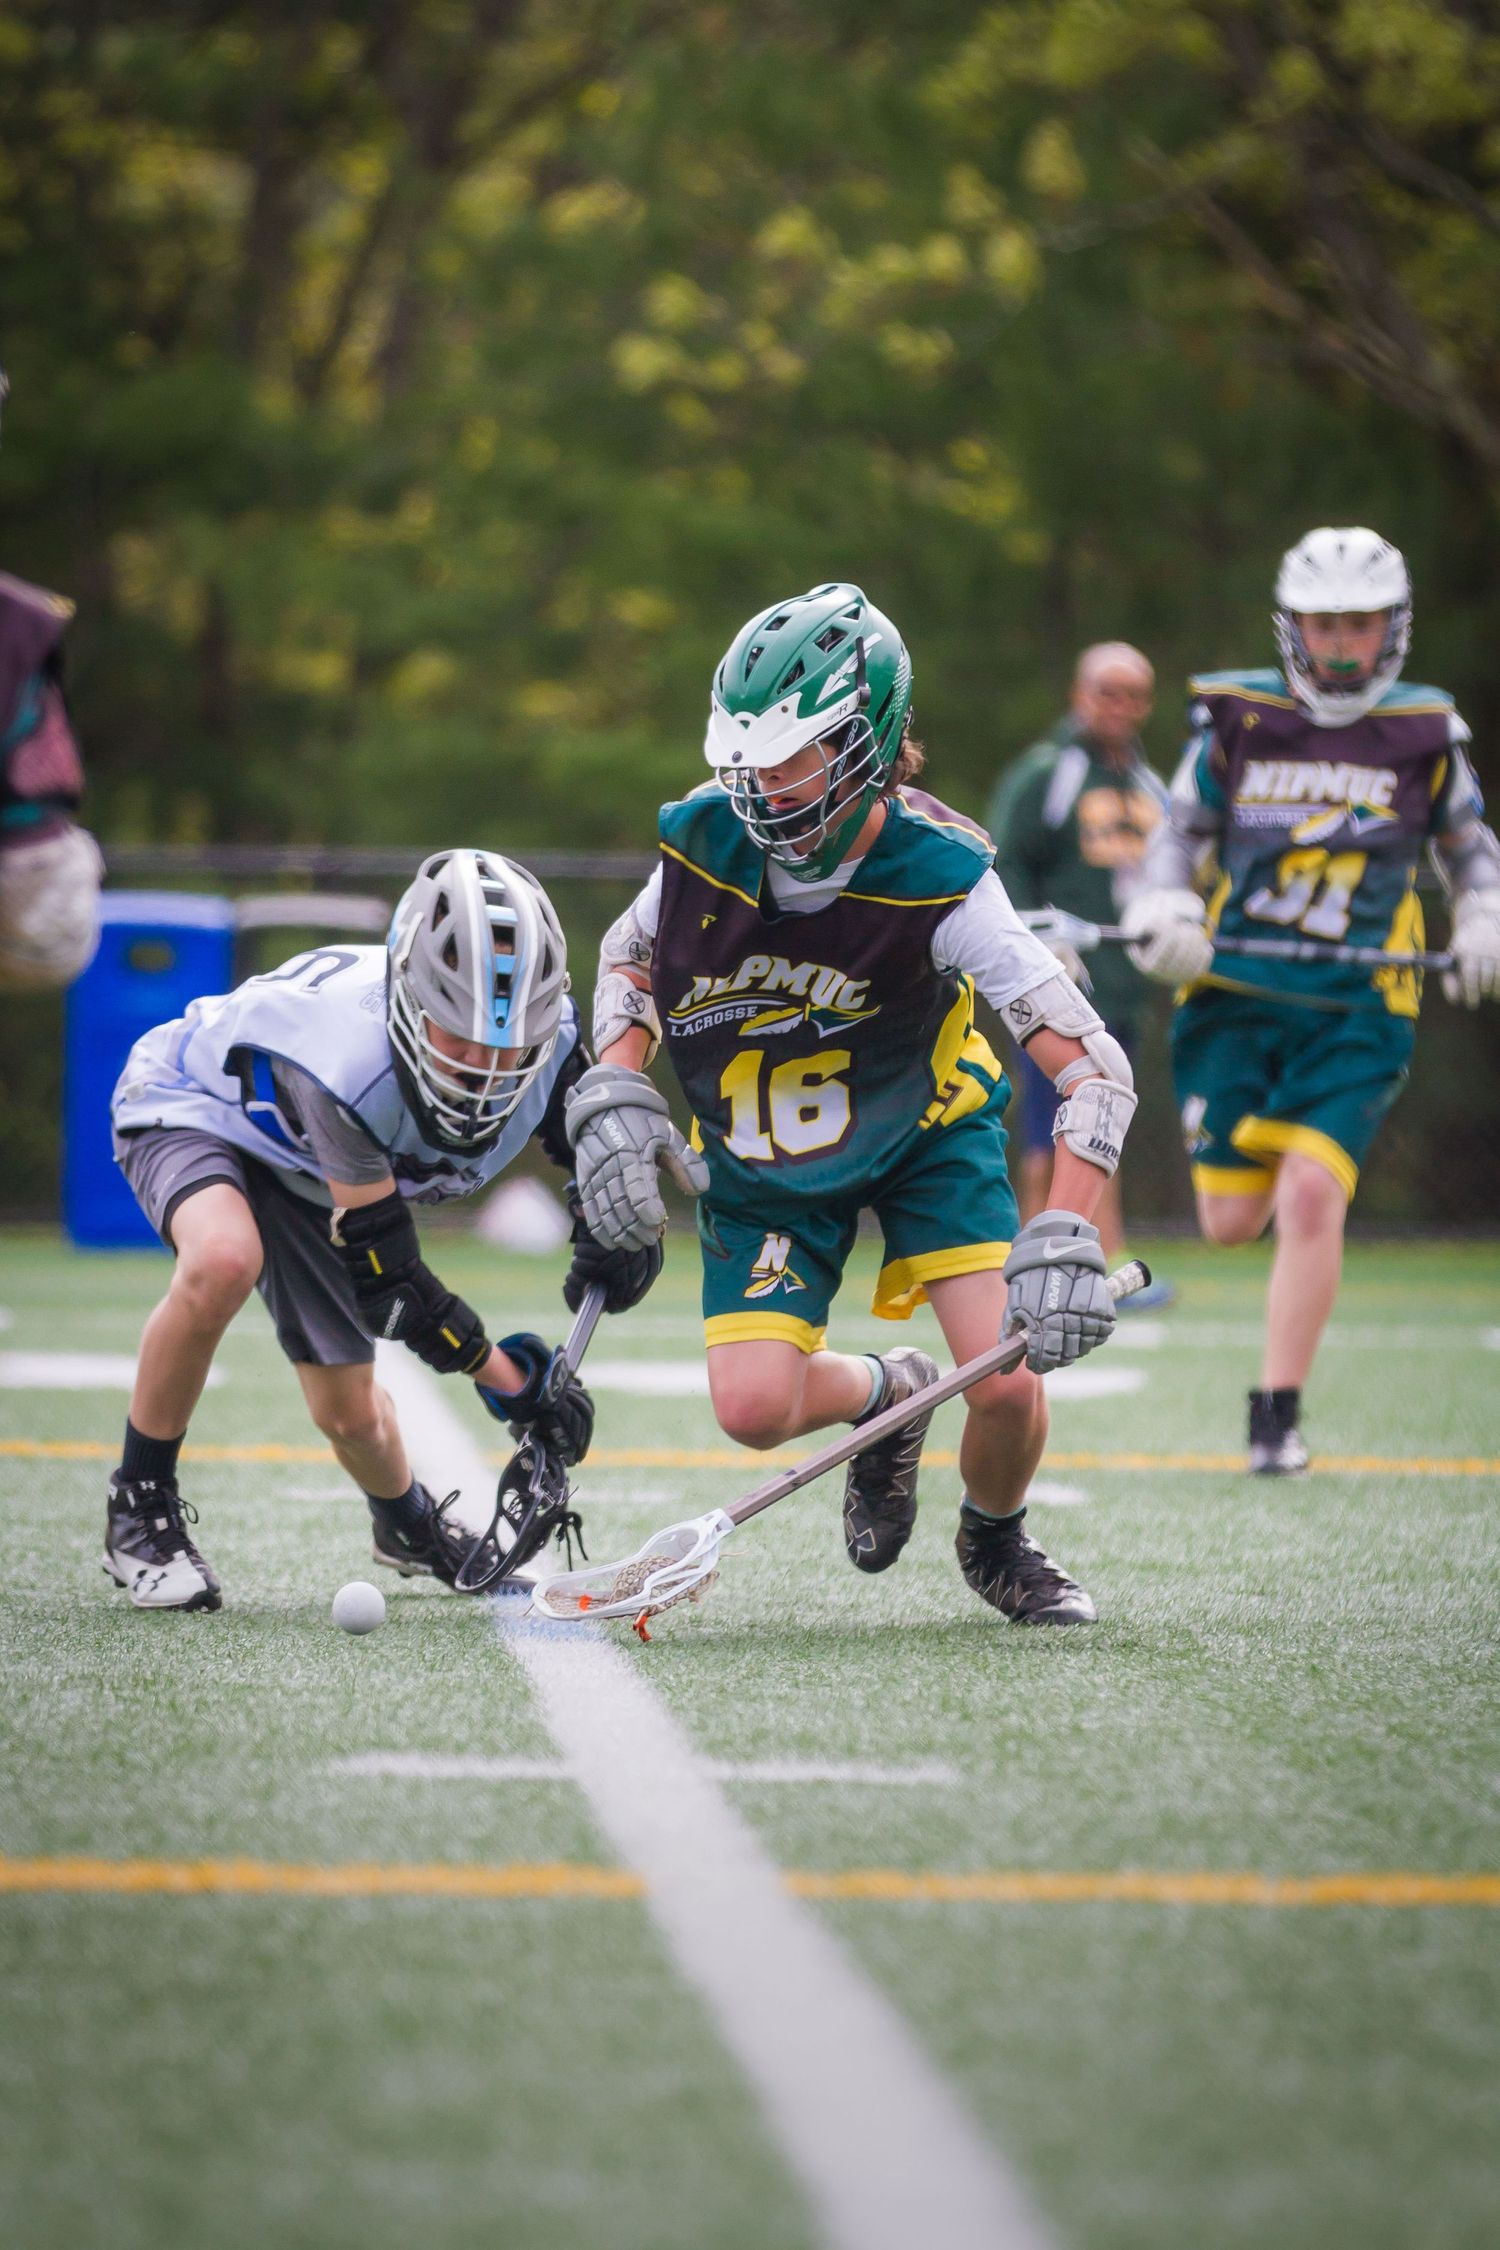 Nipmuc LAX Lacrosse Action Shot of Male Player